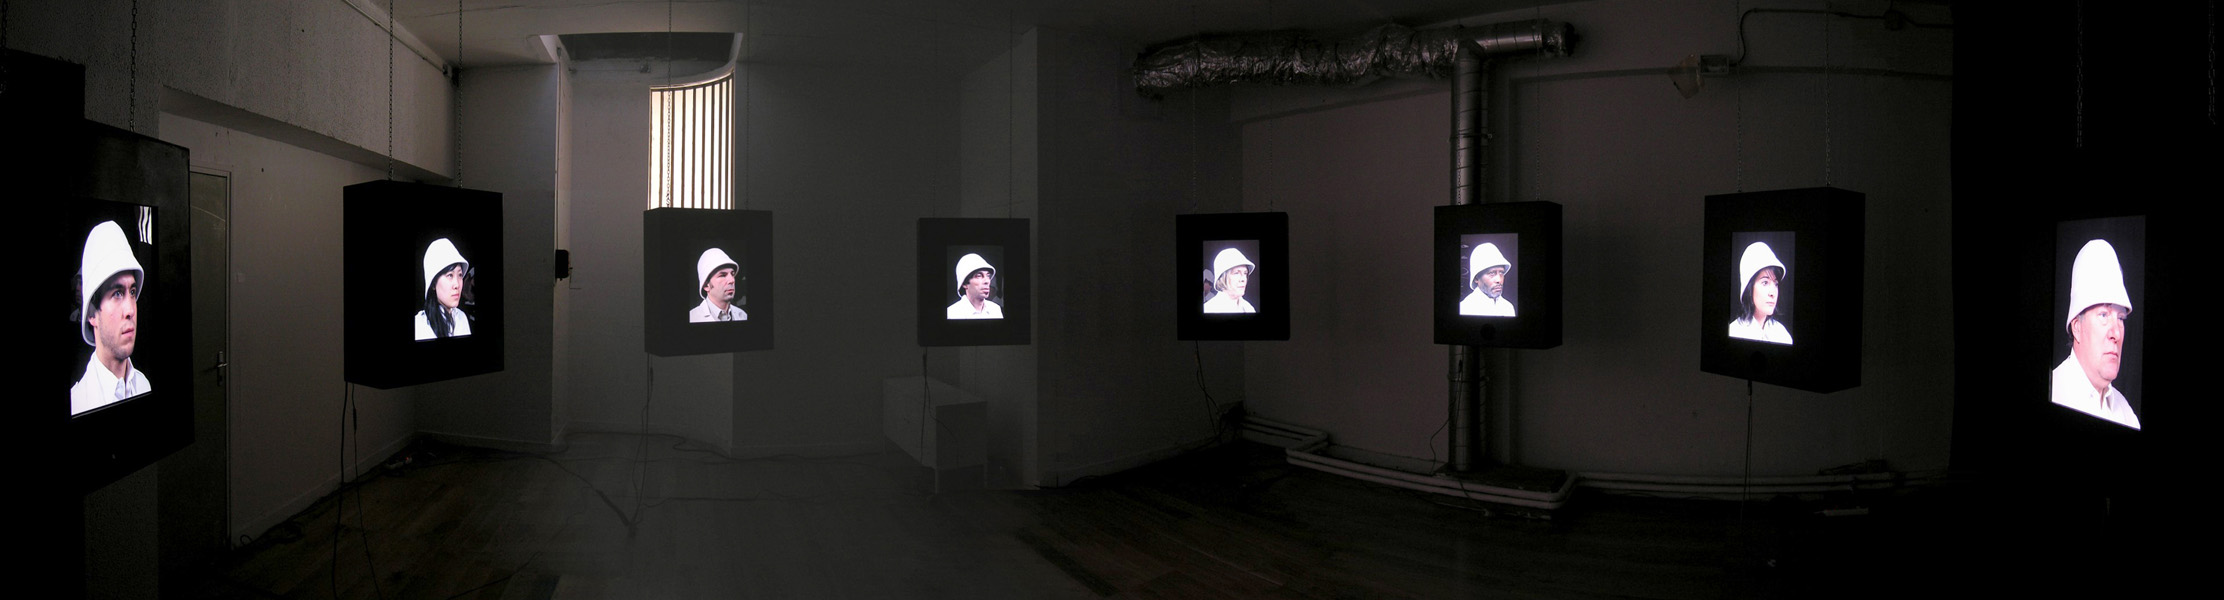 http://www.julienpelletier.fr/files/gimgs/4_alter-mundi-installation.jpg